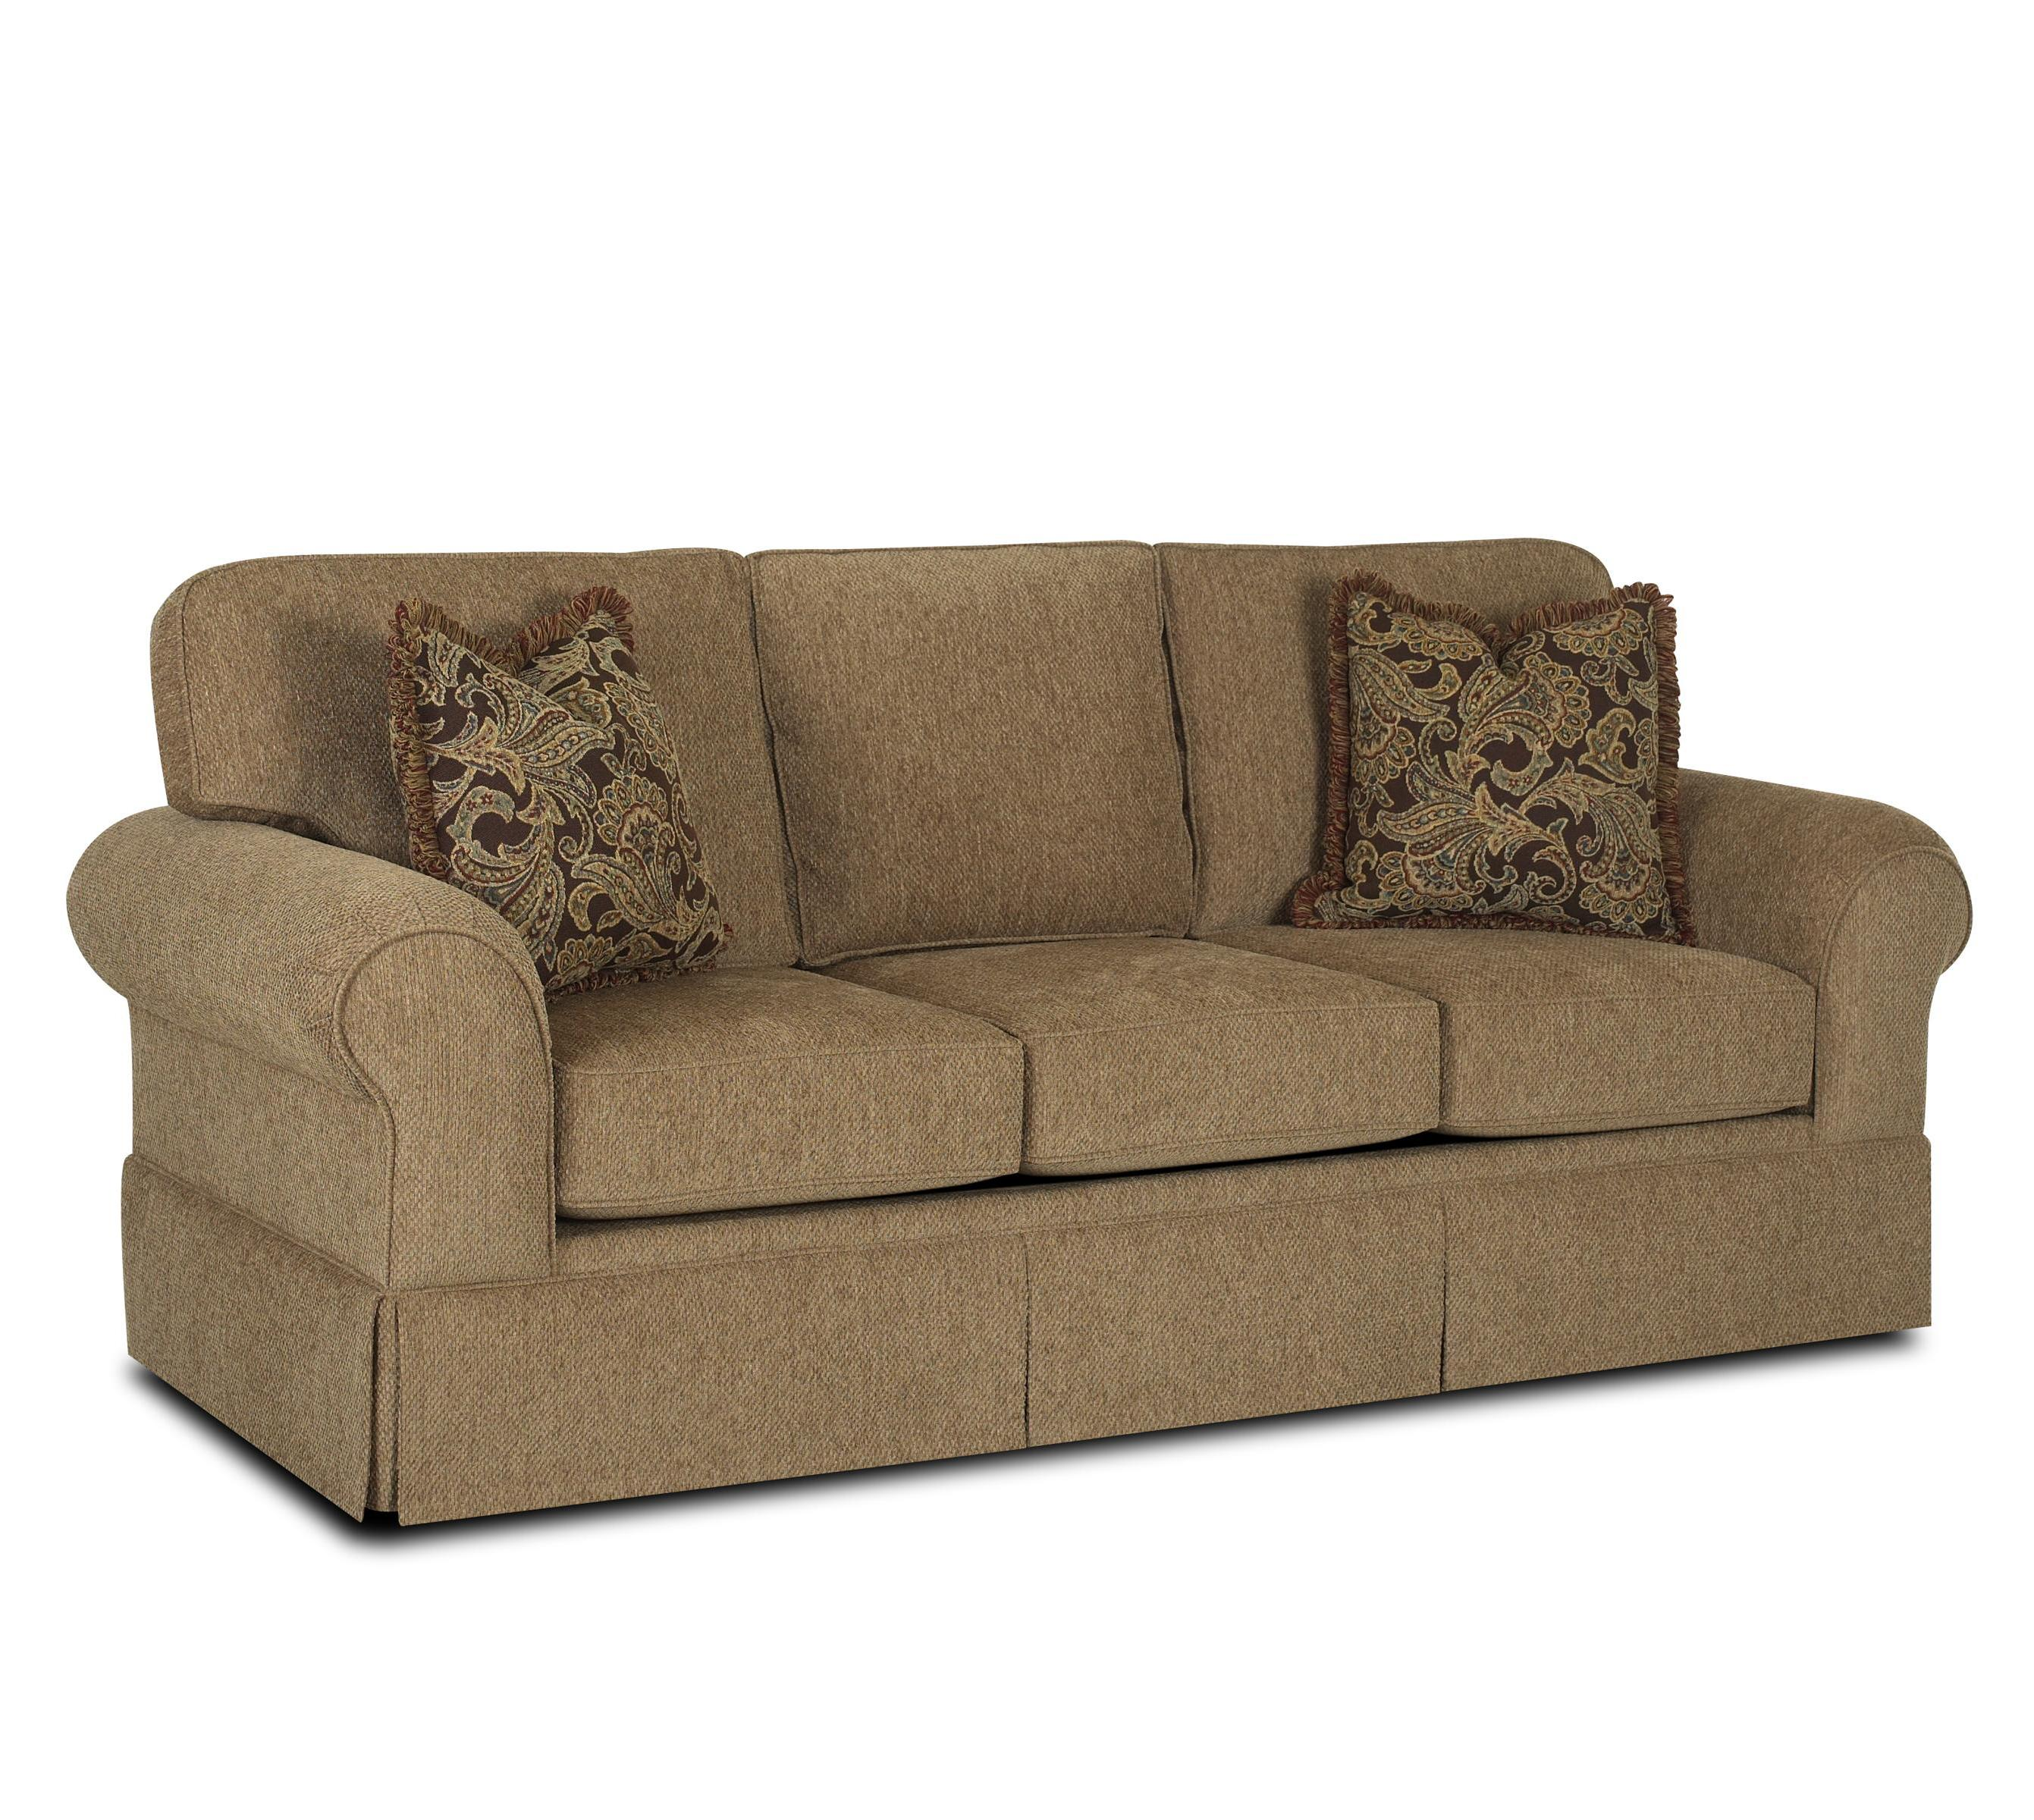 Woodwin Sofa by Klaussner at Northeast Factory Direct